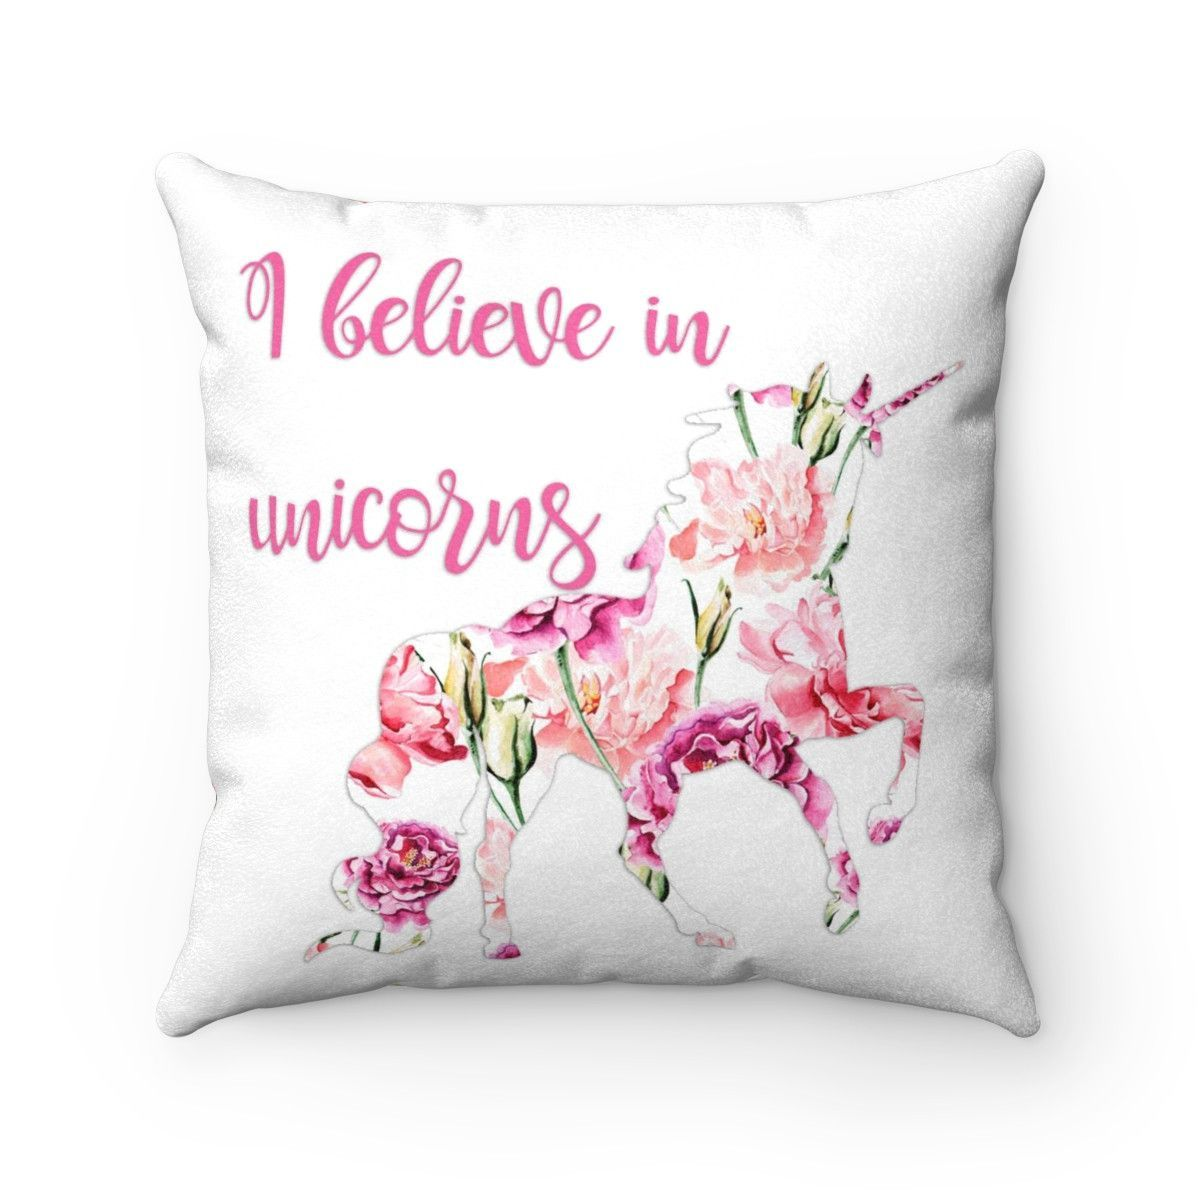 Feminine Pink I Believe in Unicorns Faux Suede Throw Pillow If you believe in unicorns, then let eve